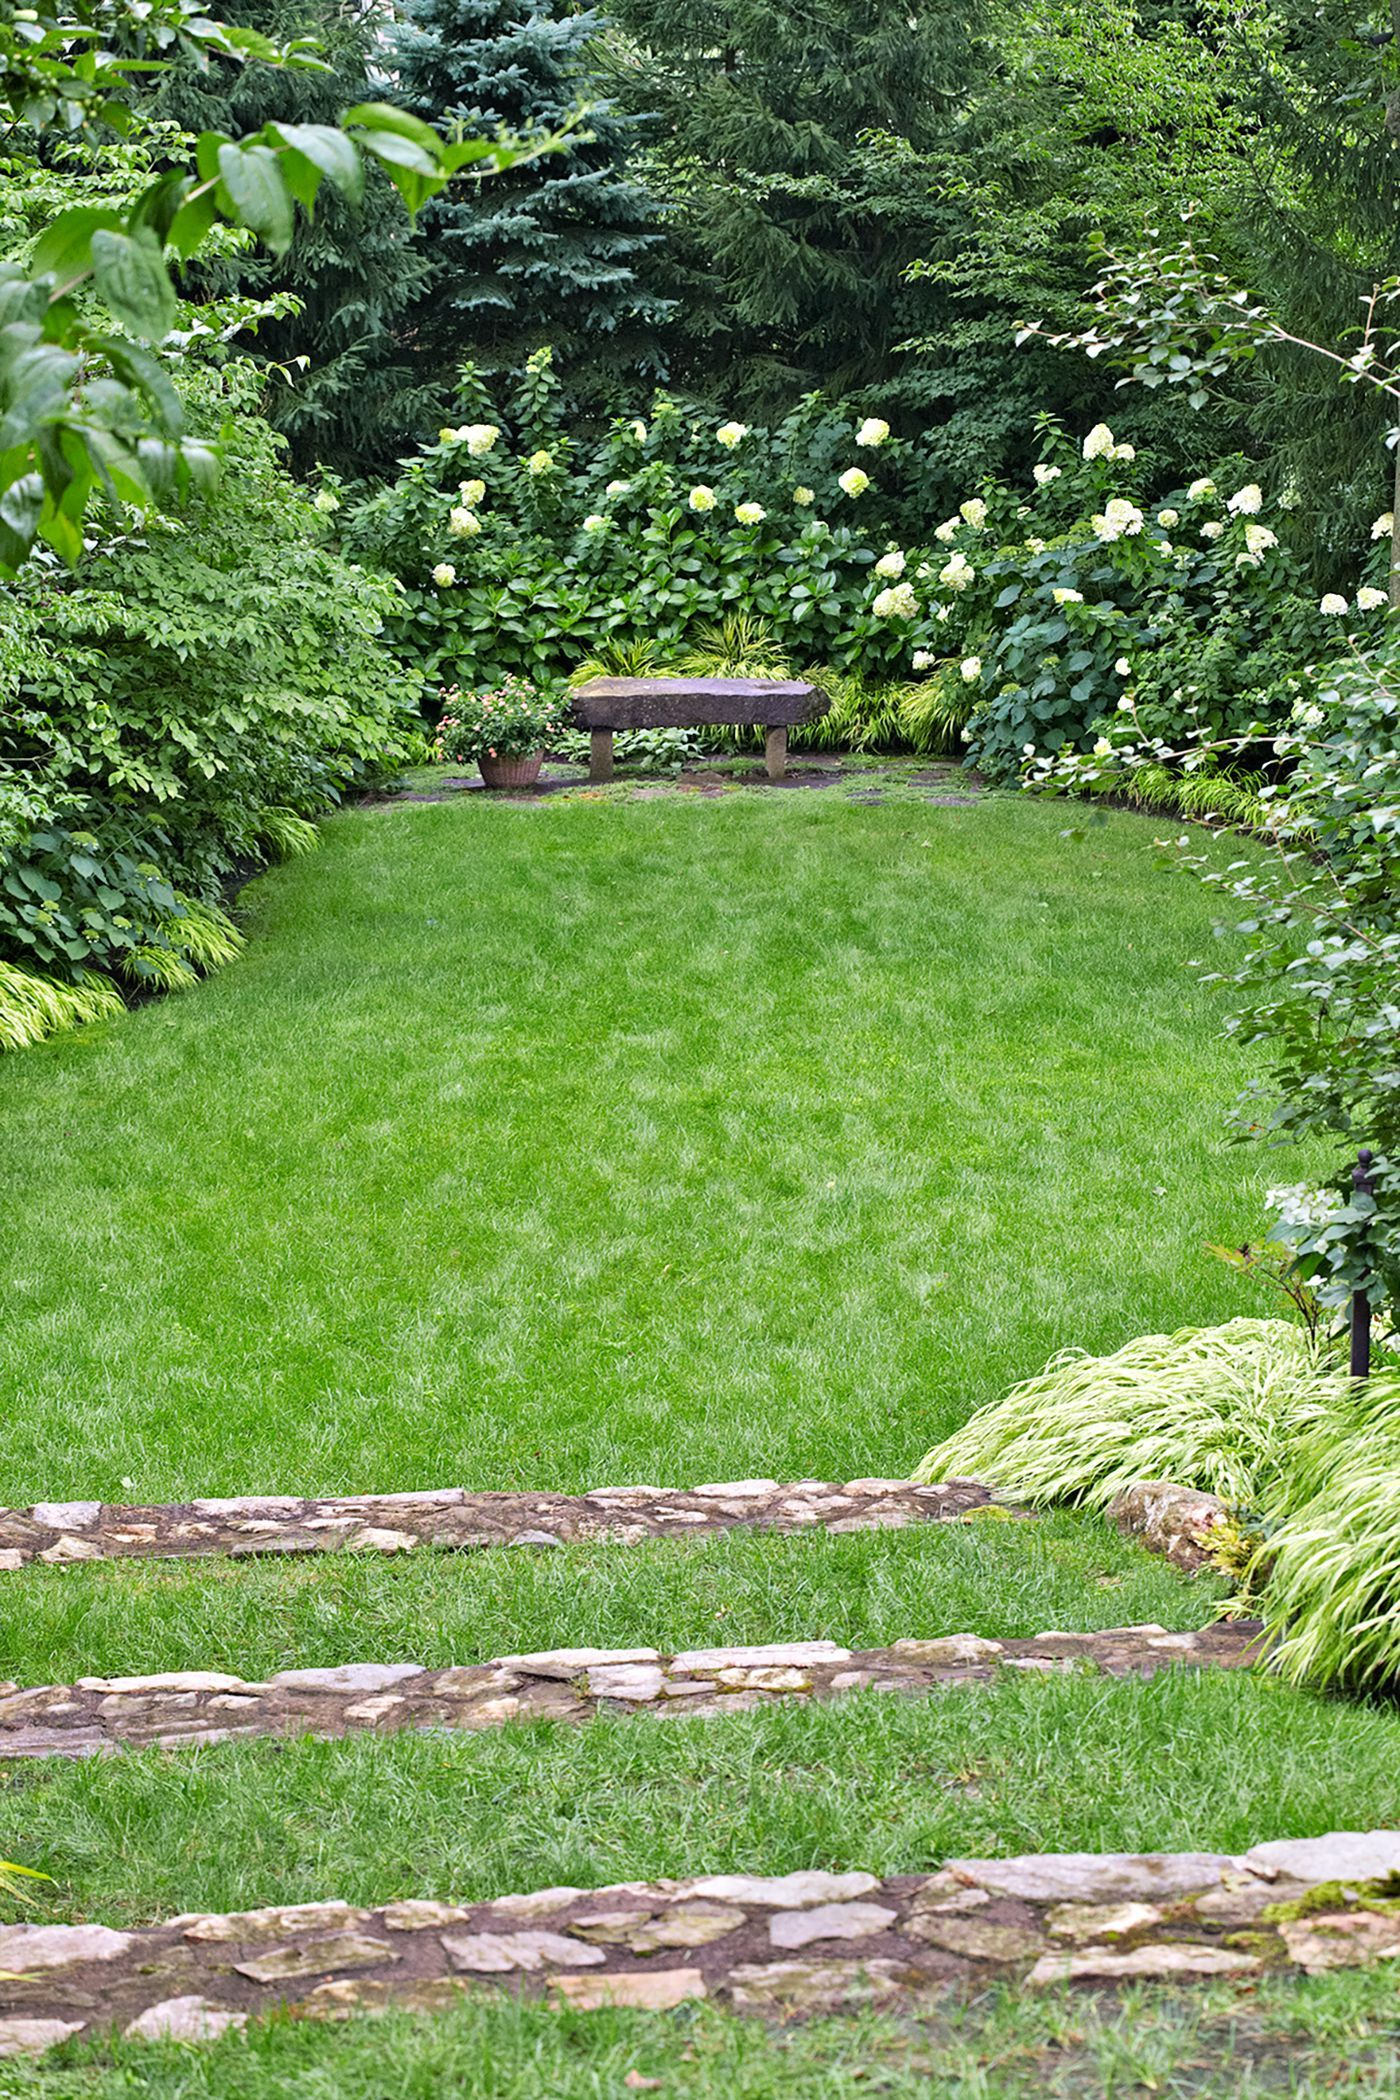 A Steeply Sloped Yard Becomes A Hillside Oasis Sloped Yard Lawn And Landscape Hillside Landscaping Backyard oasis ideas this old house